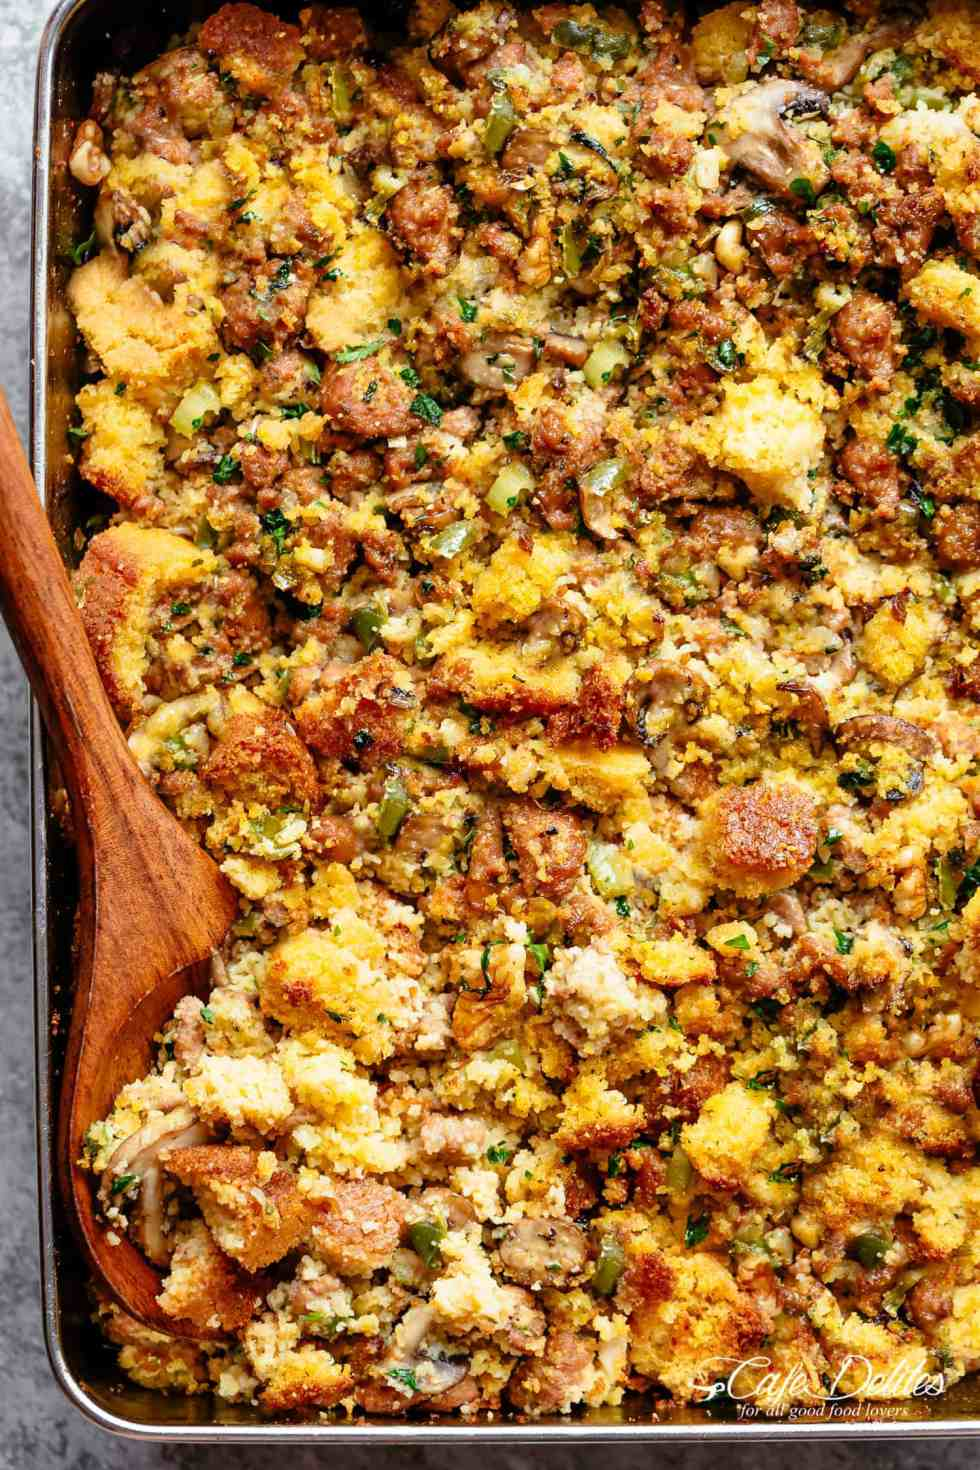 Cornbread Dressing recipe moist, light and fluffy with a perfect crispy, golden crust.